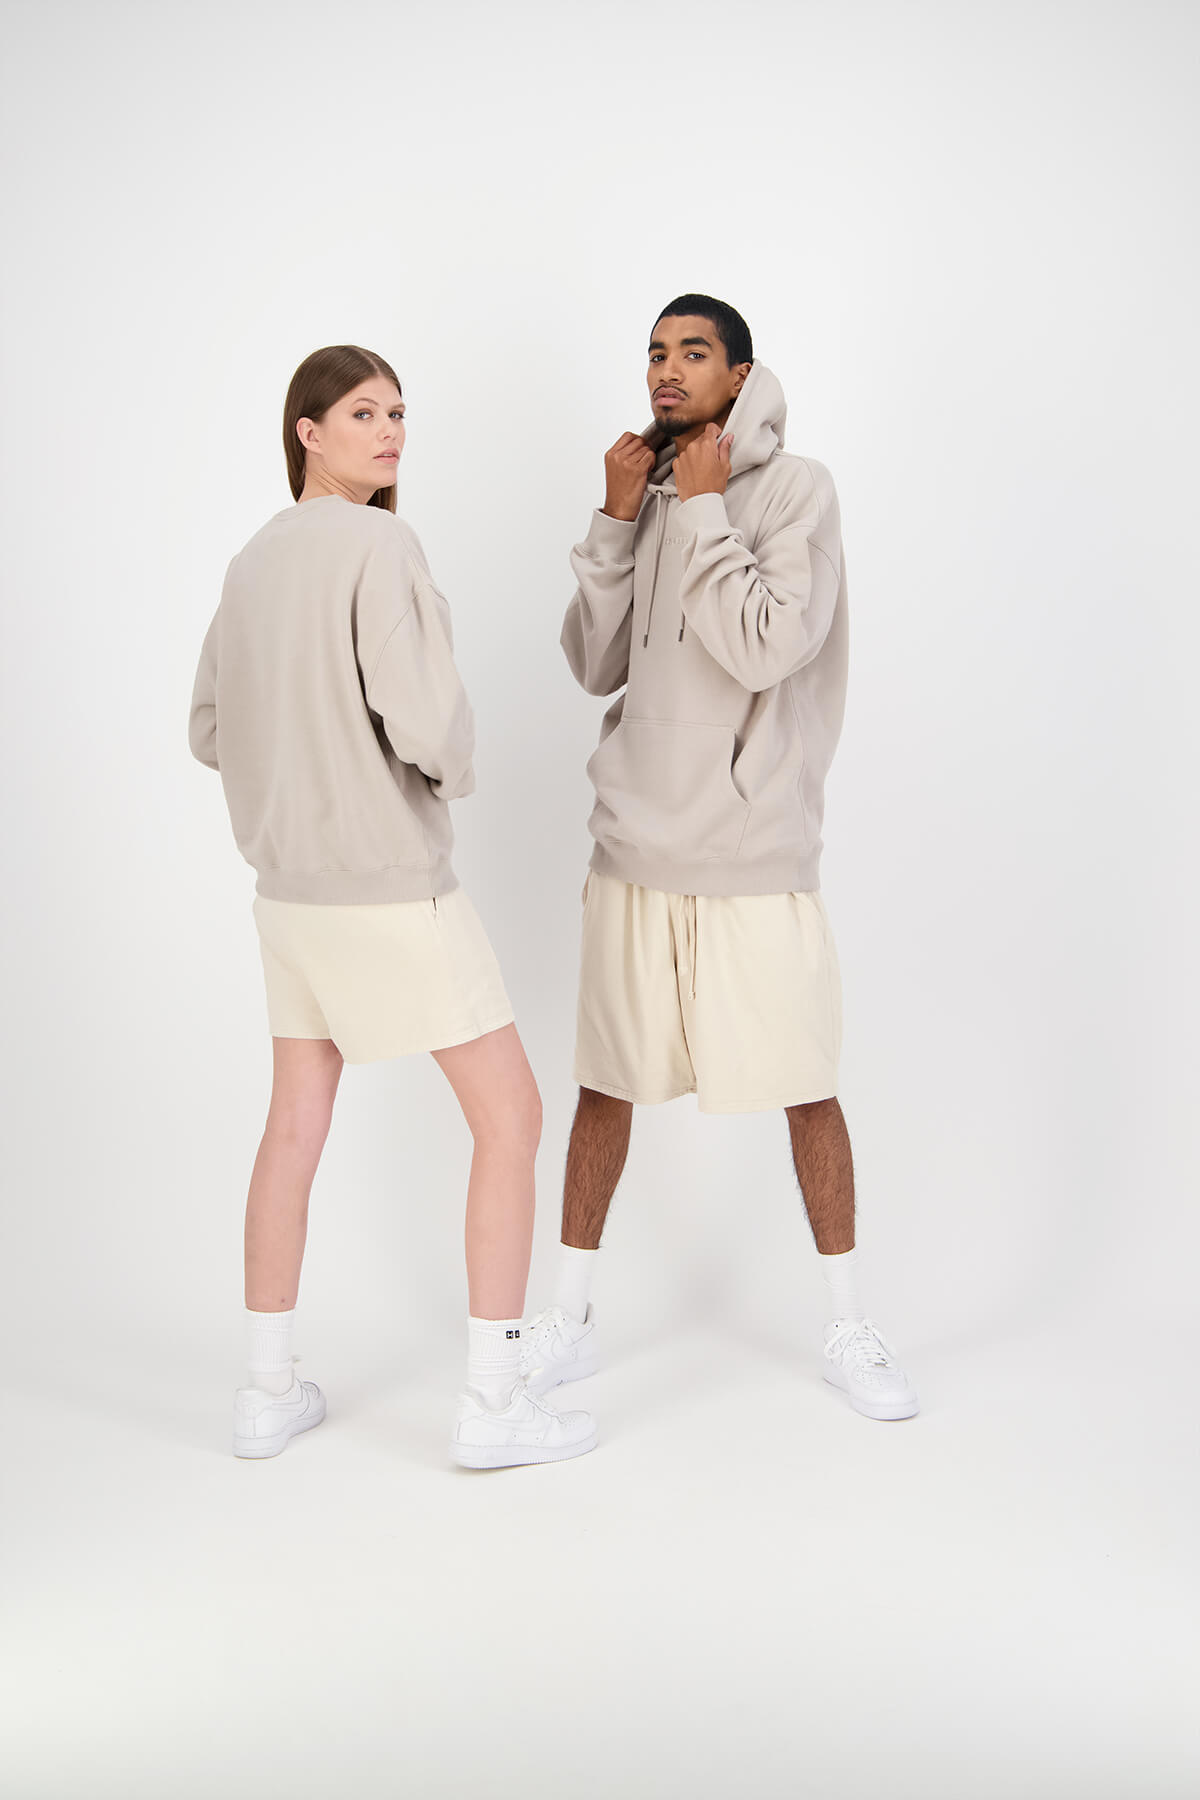 Huffer models wearing brown streetwear fashion studio photography and video